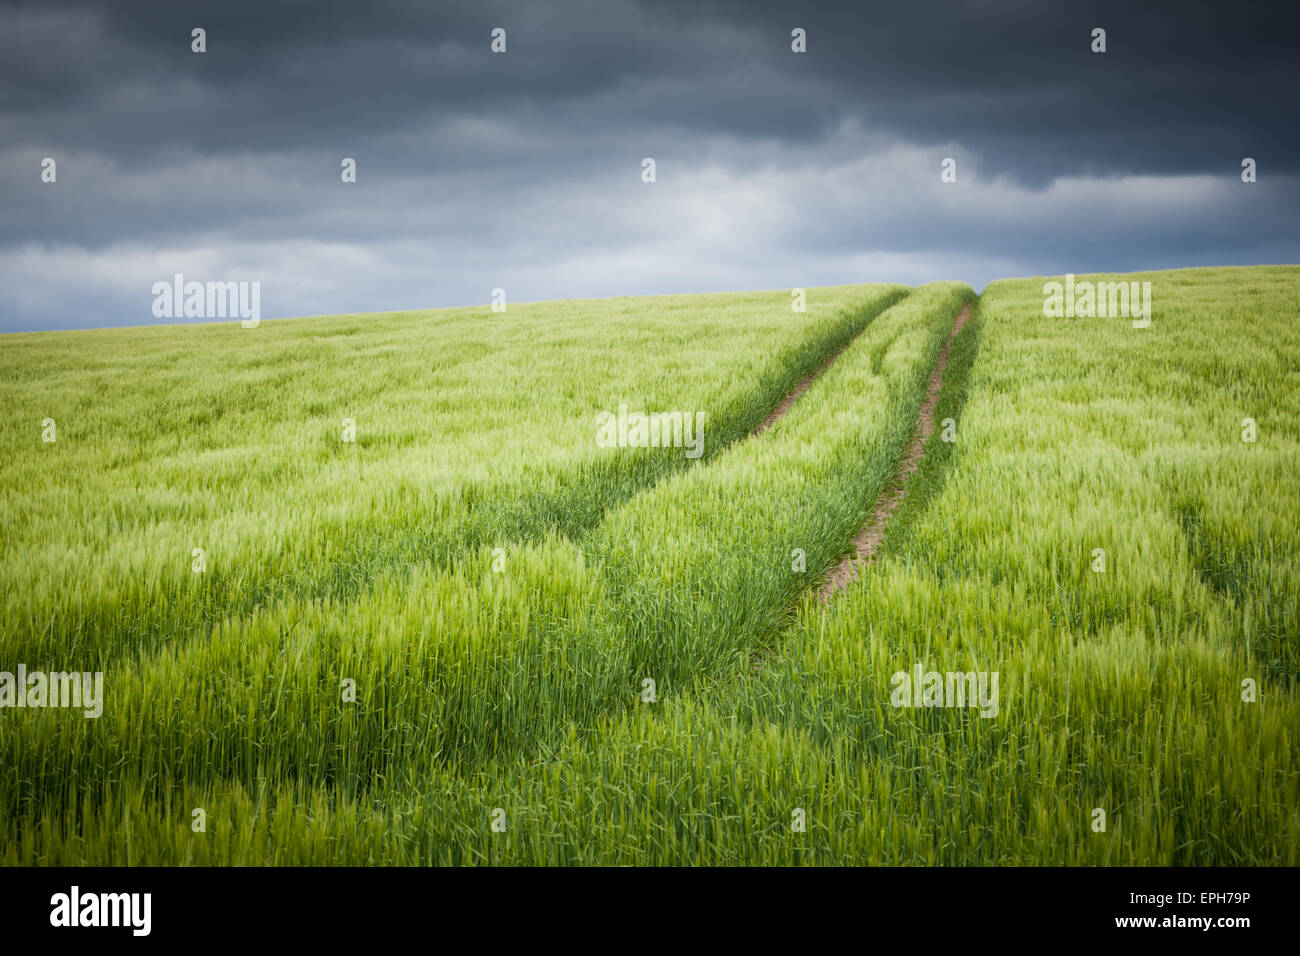 Tractor lines through a young fresh green crop in a farmer's field under a stormy sky in Northumberland, England - Stock Image